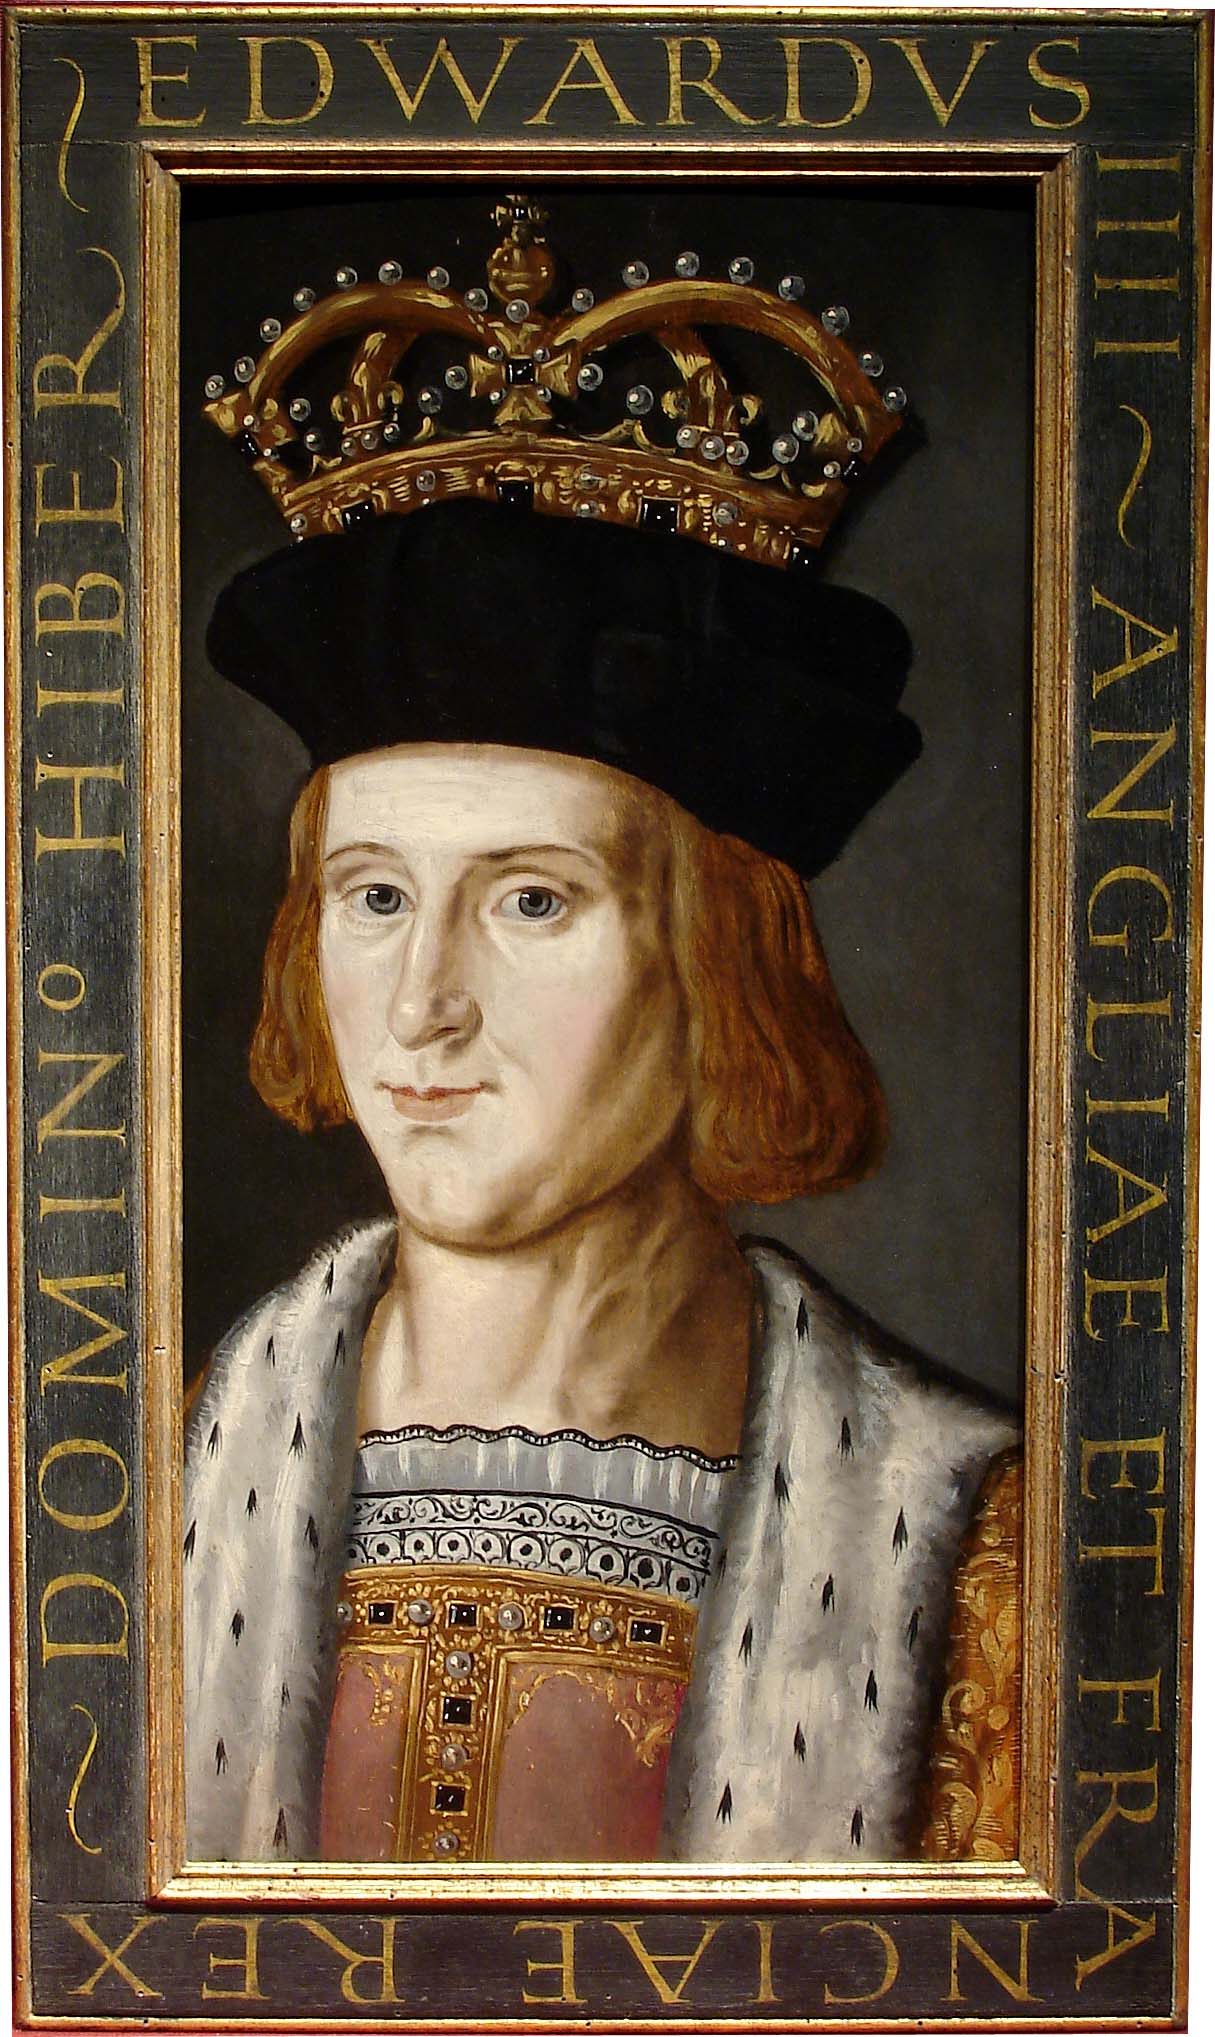 a painted portrait of King Edward IV with crown sitting atop a black felt Tudor hat